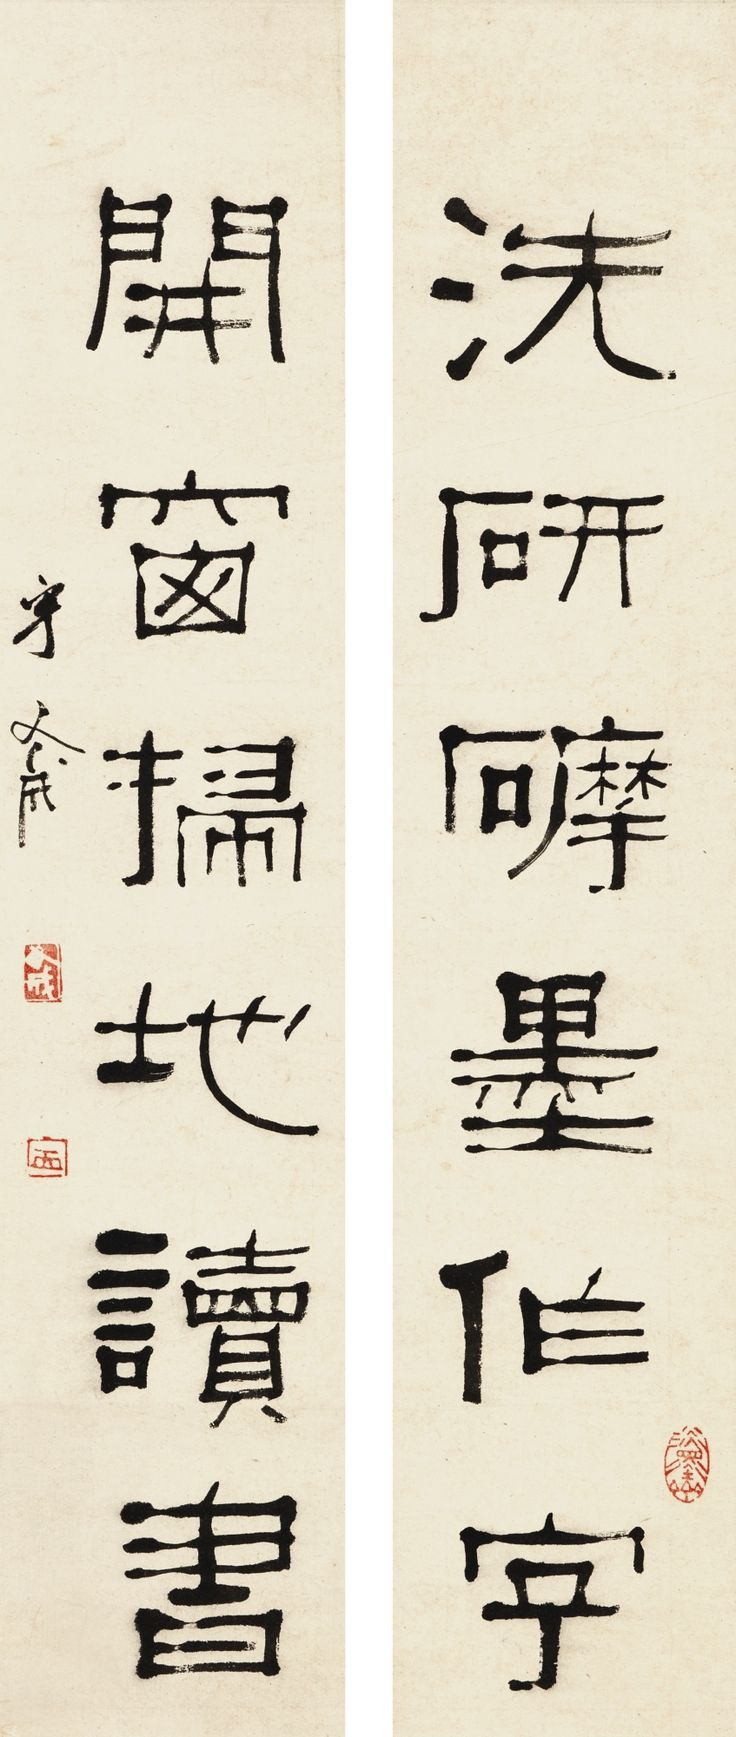 Ning Fucheng (1897-1966) CALLIGRAPHY COUPLET IN LISHU signed NING FUCHENG, and with three seals of the artist ink on paper, pair of hanging scrolls each 86 by 16.2 cm. 33 7/8 by 6 3/8 in. (2) 寧斧成 (1897-1966) 隸書六言聯 水墨紙本 立軸 款識: 洗研磨墨作字,開窗掃地讀書。 寧斧成。 鈐印:「淡墨齋」、「斧成」、「寧」。 each 86 by 16.2 cm. 33 7/8 by 6 3/8 in. (2)